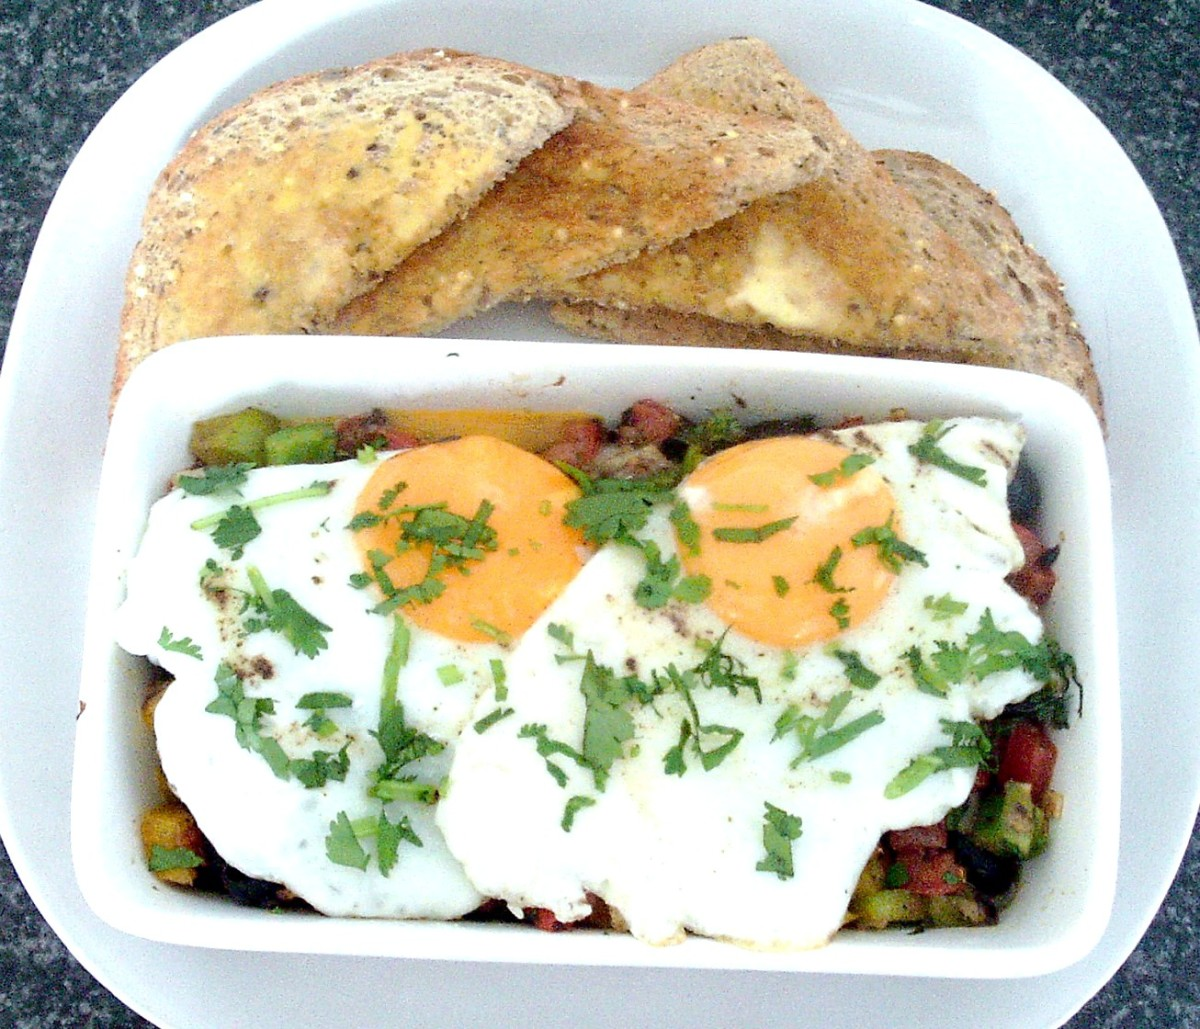 Fisherman's eggs is just one of the sardines on toast recipes featured on this page